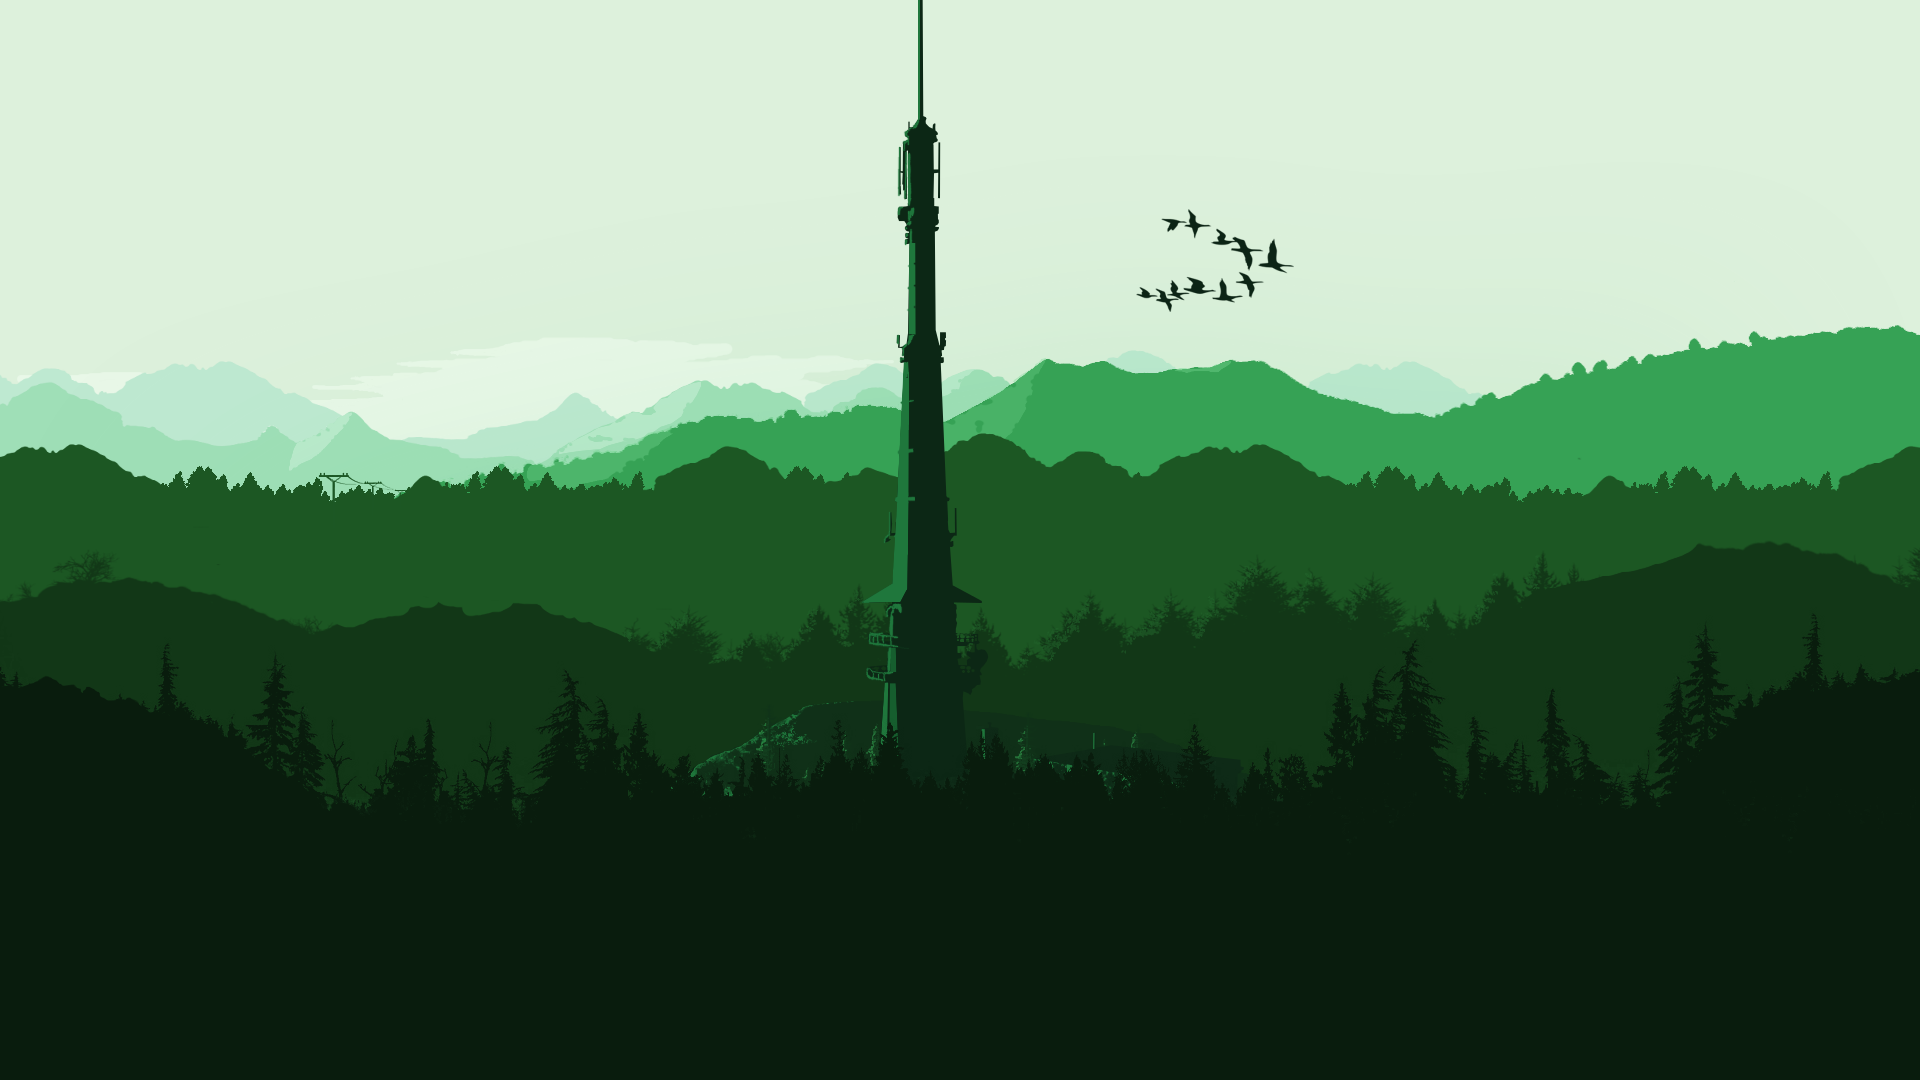 MediaI Made A Wallpaper In The Style Of Firewatch